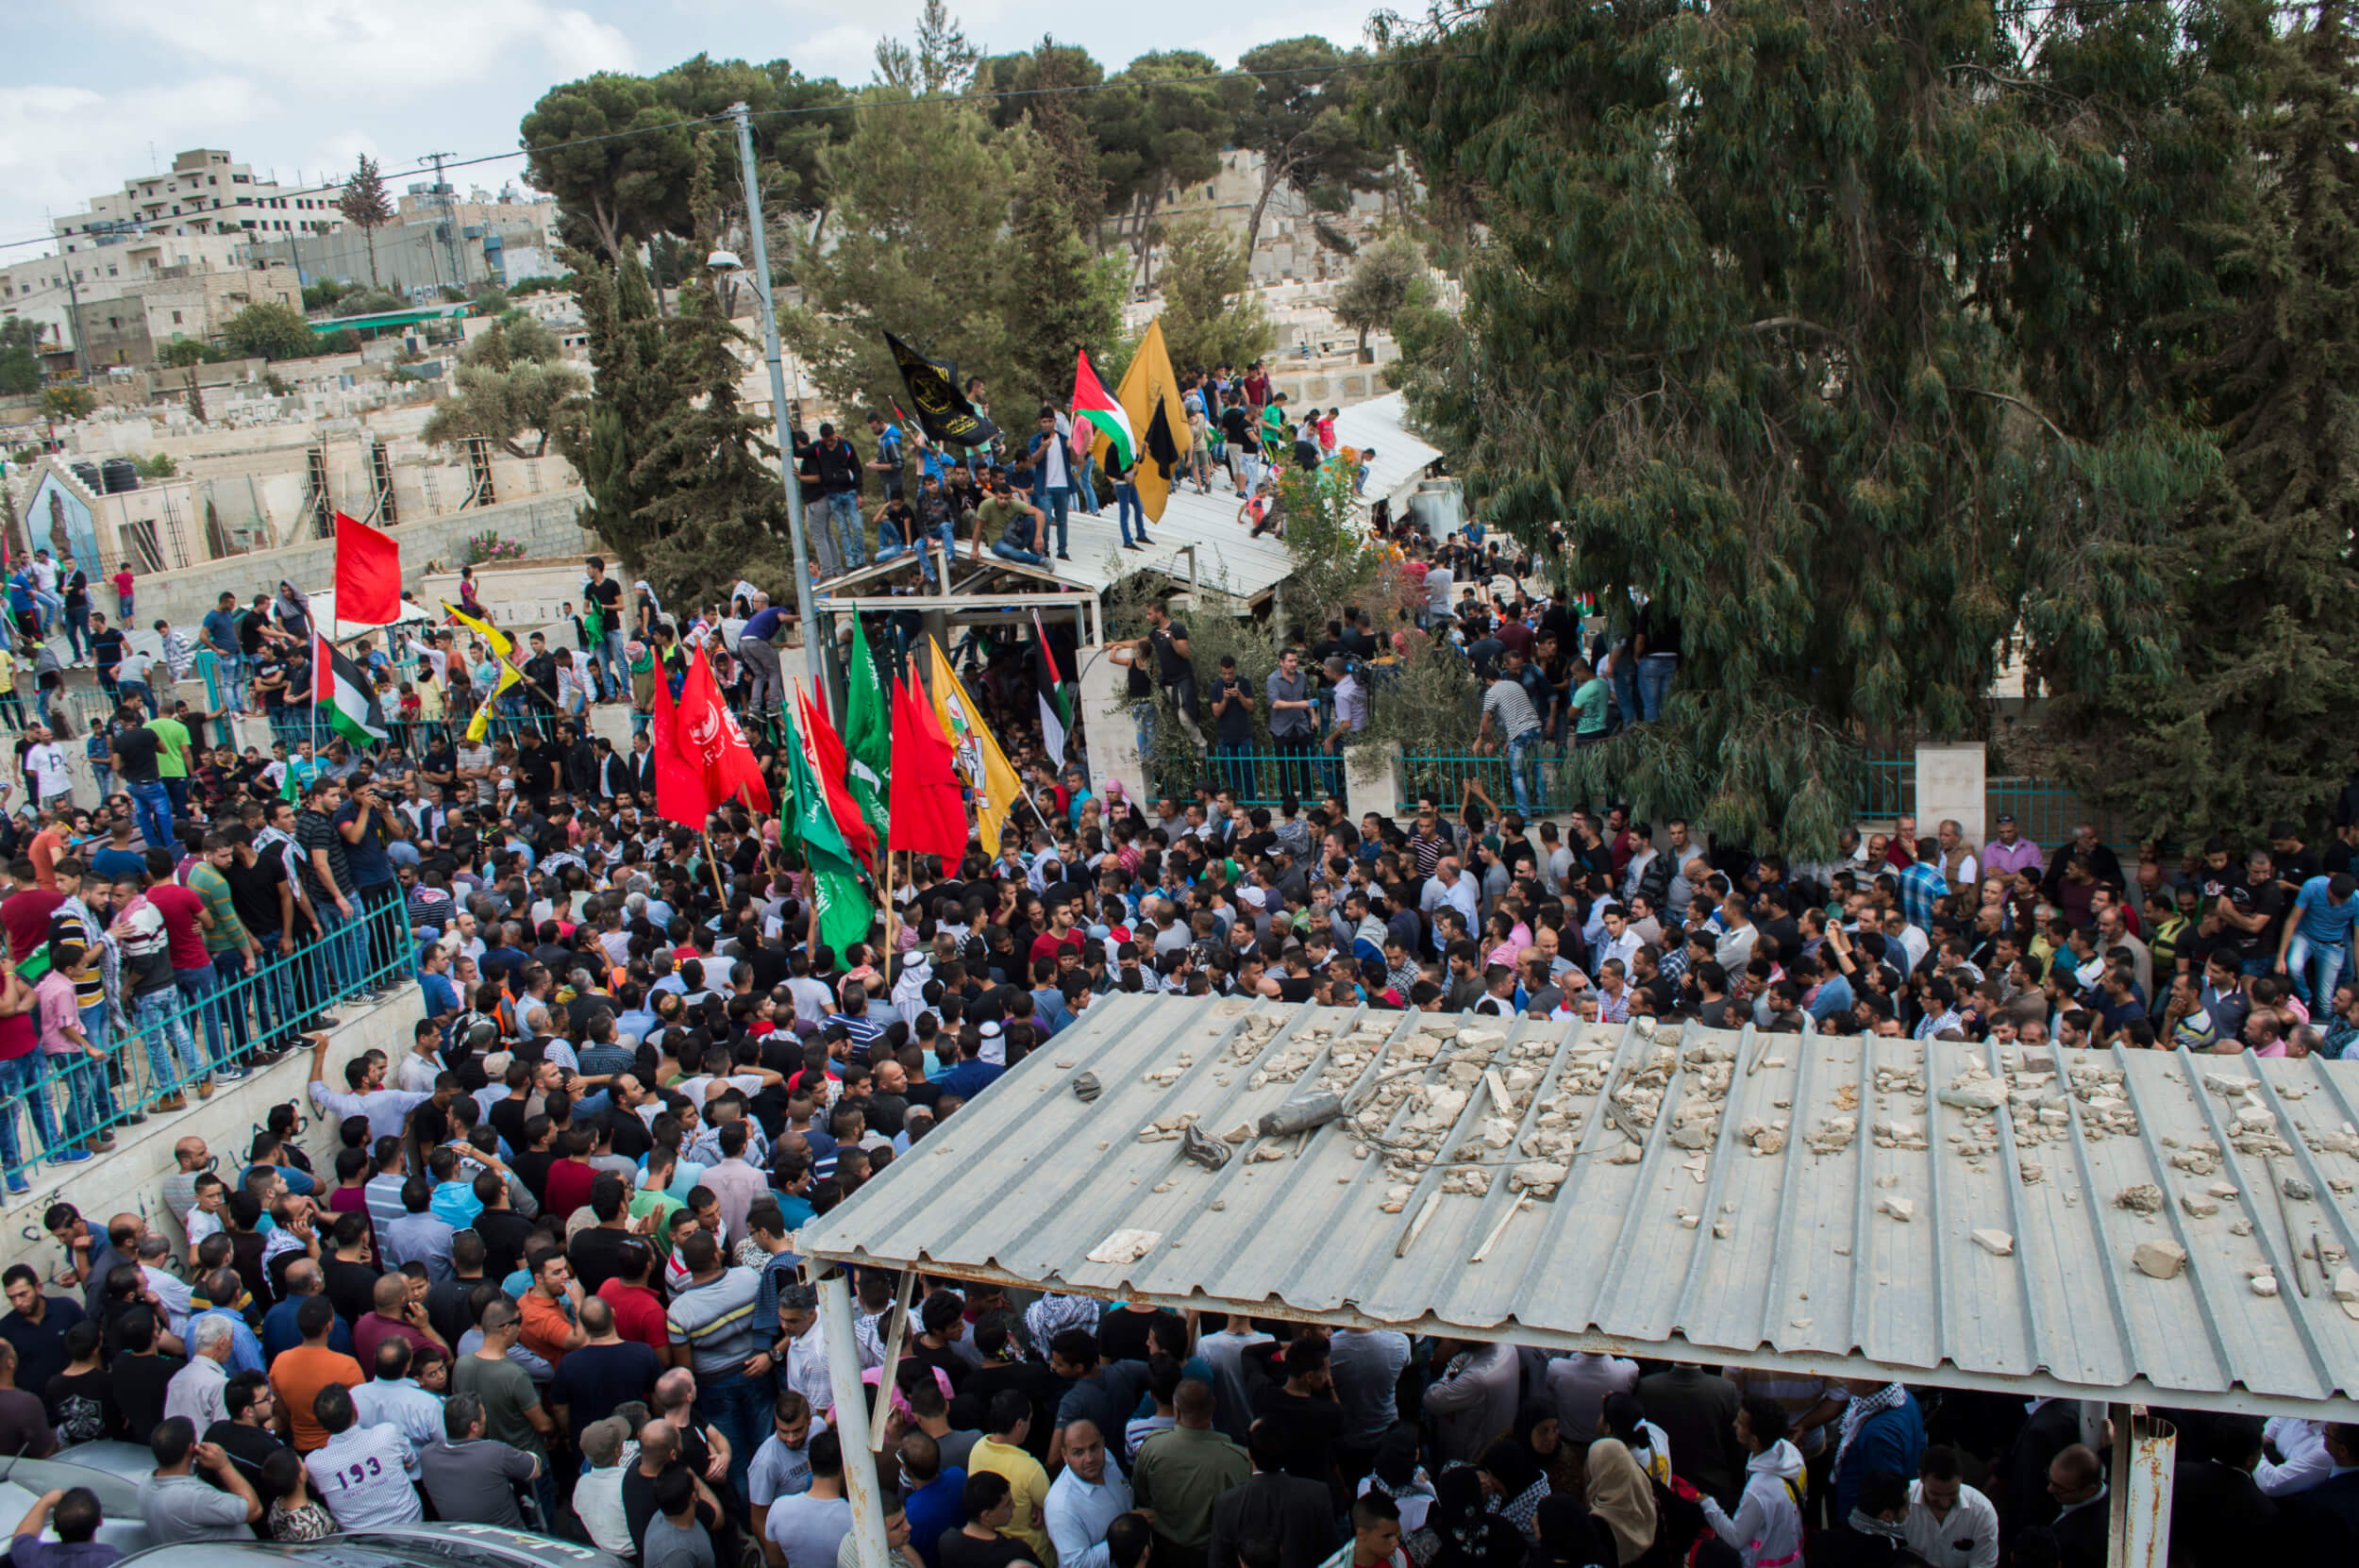 More than a thousand mourners attended the funeral of the 13-year-old boy shot dead by Israeli forces. (Photo by Abed al Qaisi)